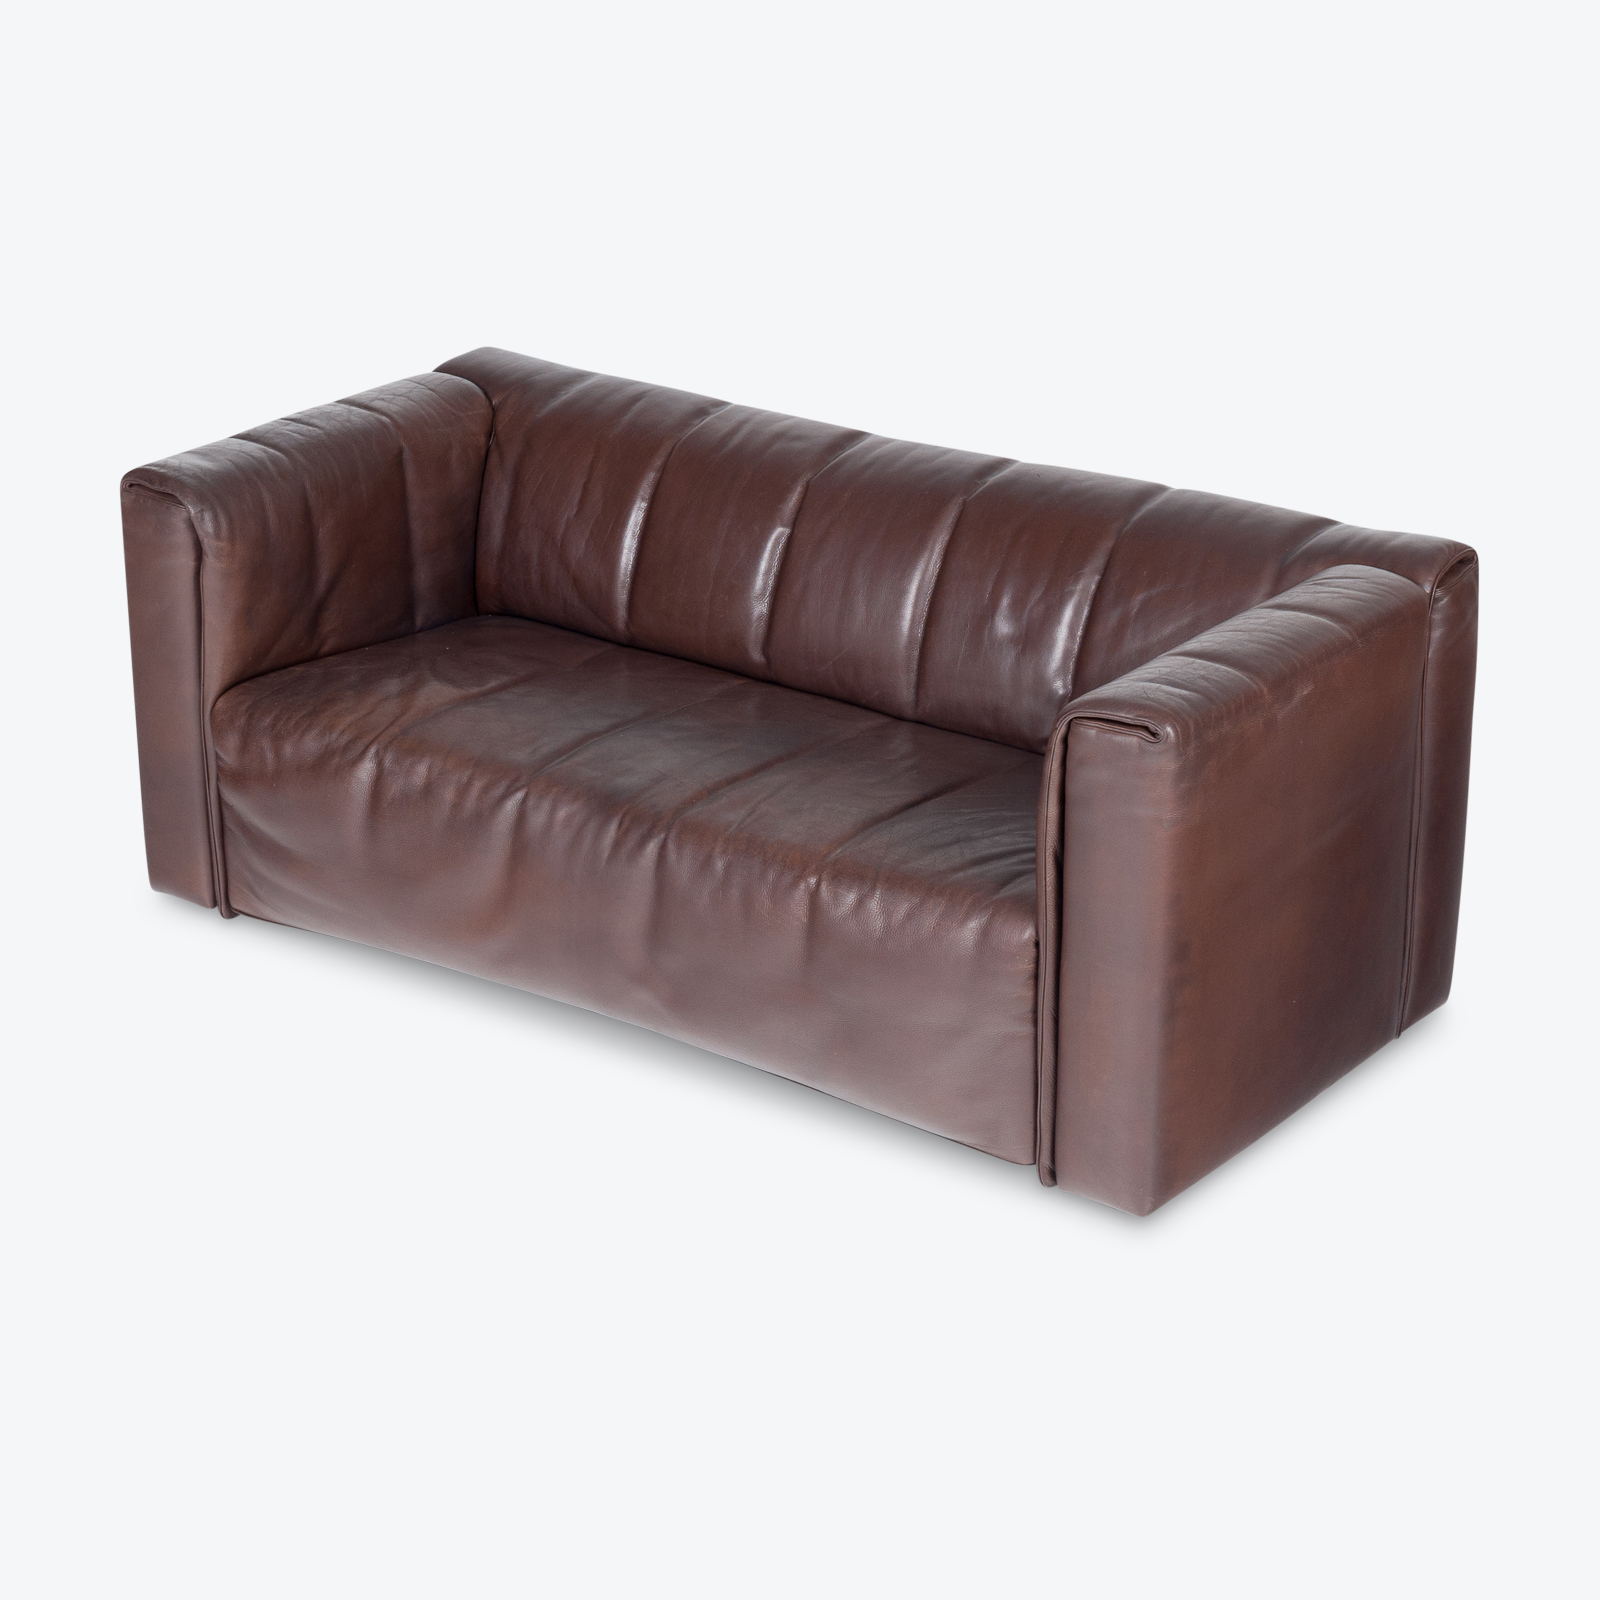 2.5 Seat Leather Sofa By Wittmann, Austria Hero